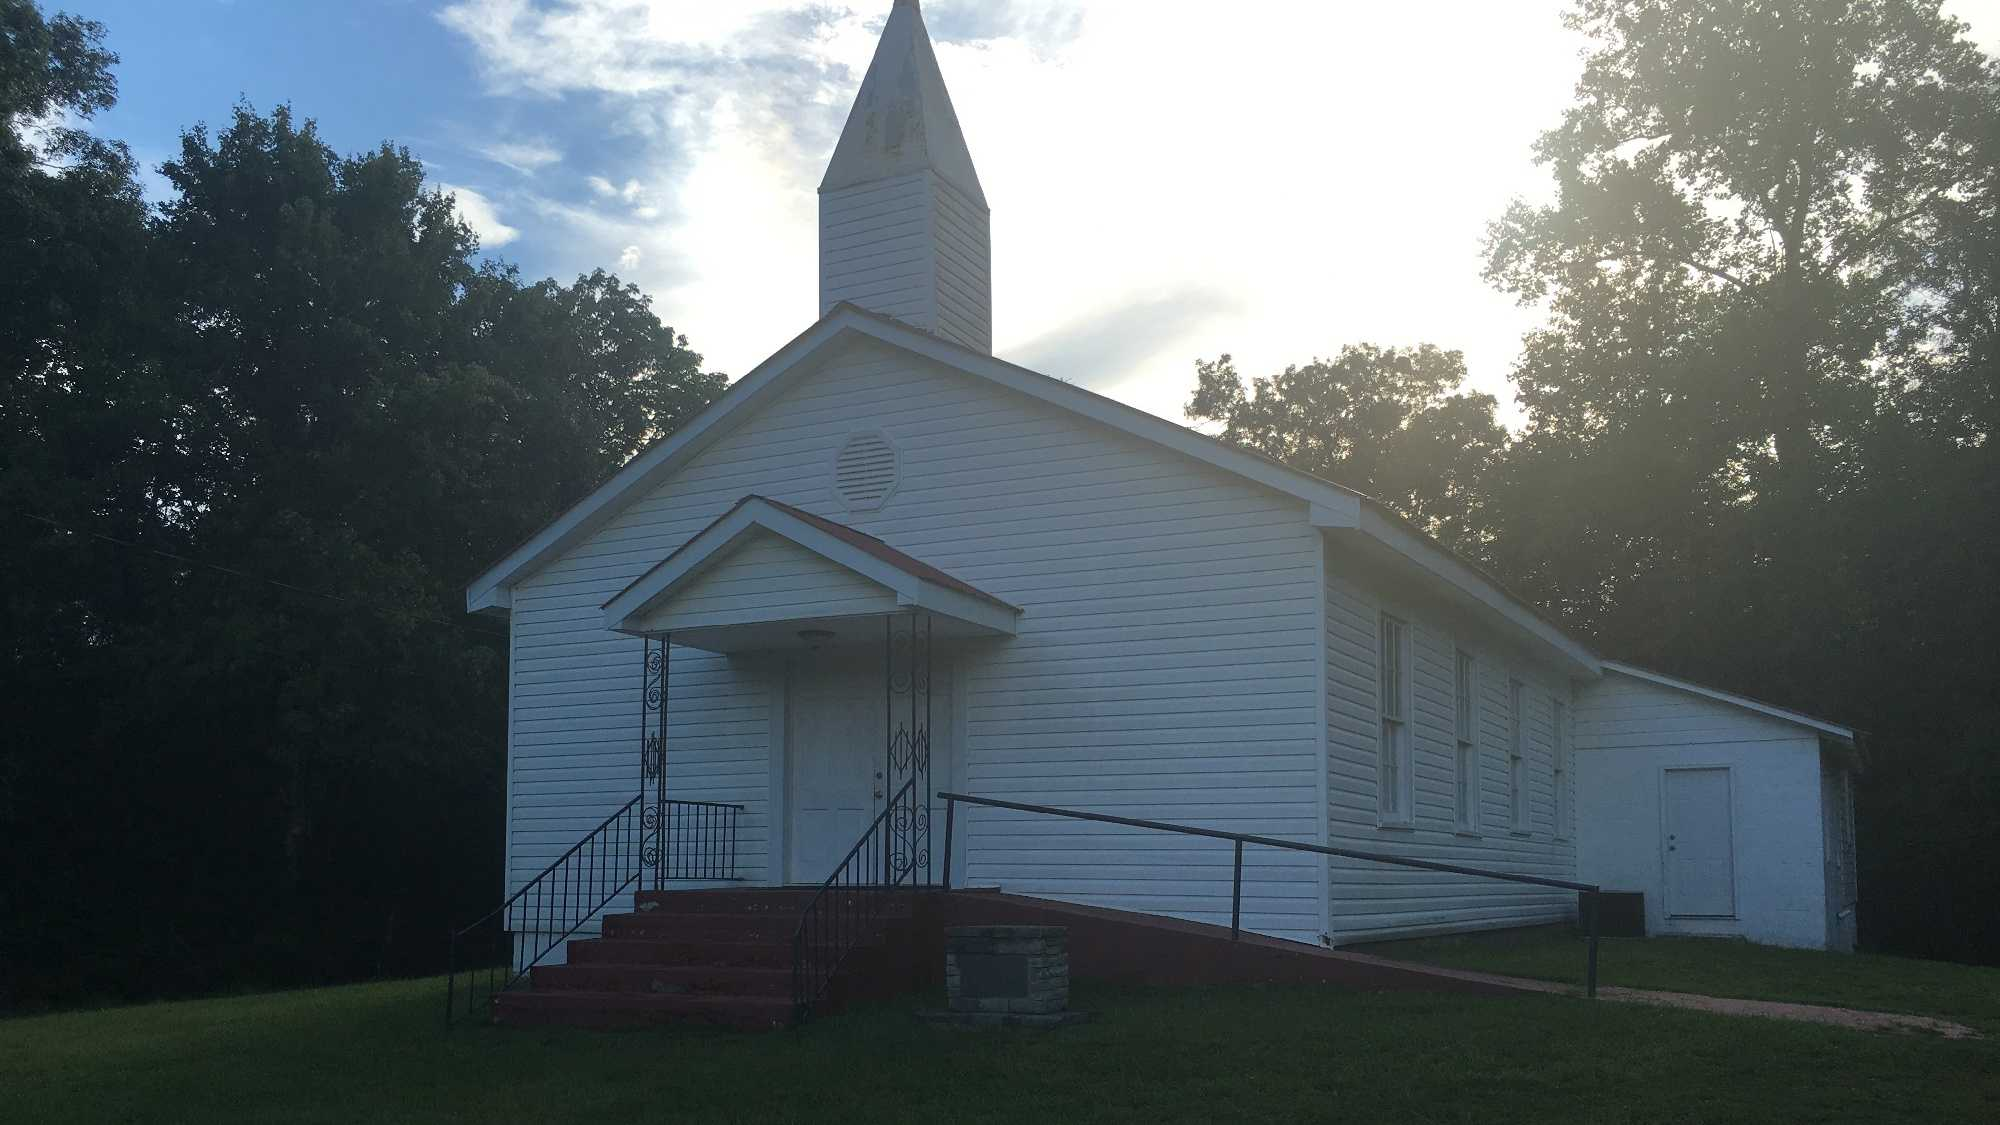 A Blount County church congregation is moving forward after a fire destroyed their sanctuary Tuesday.